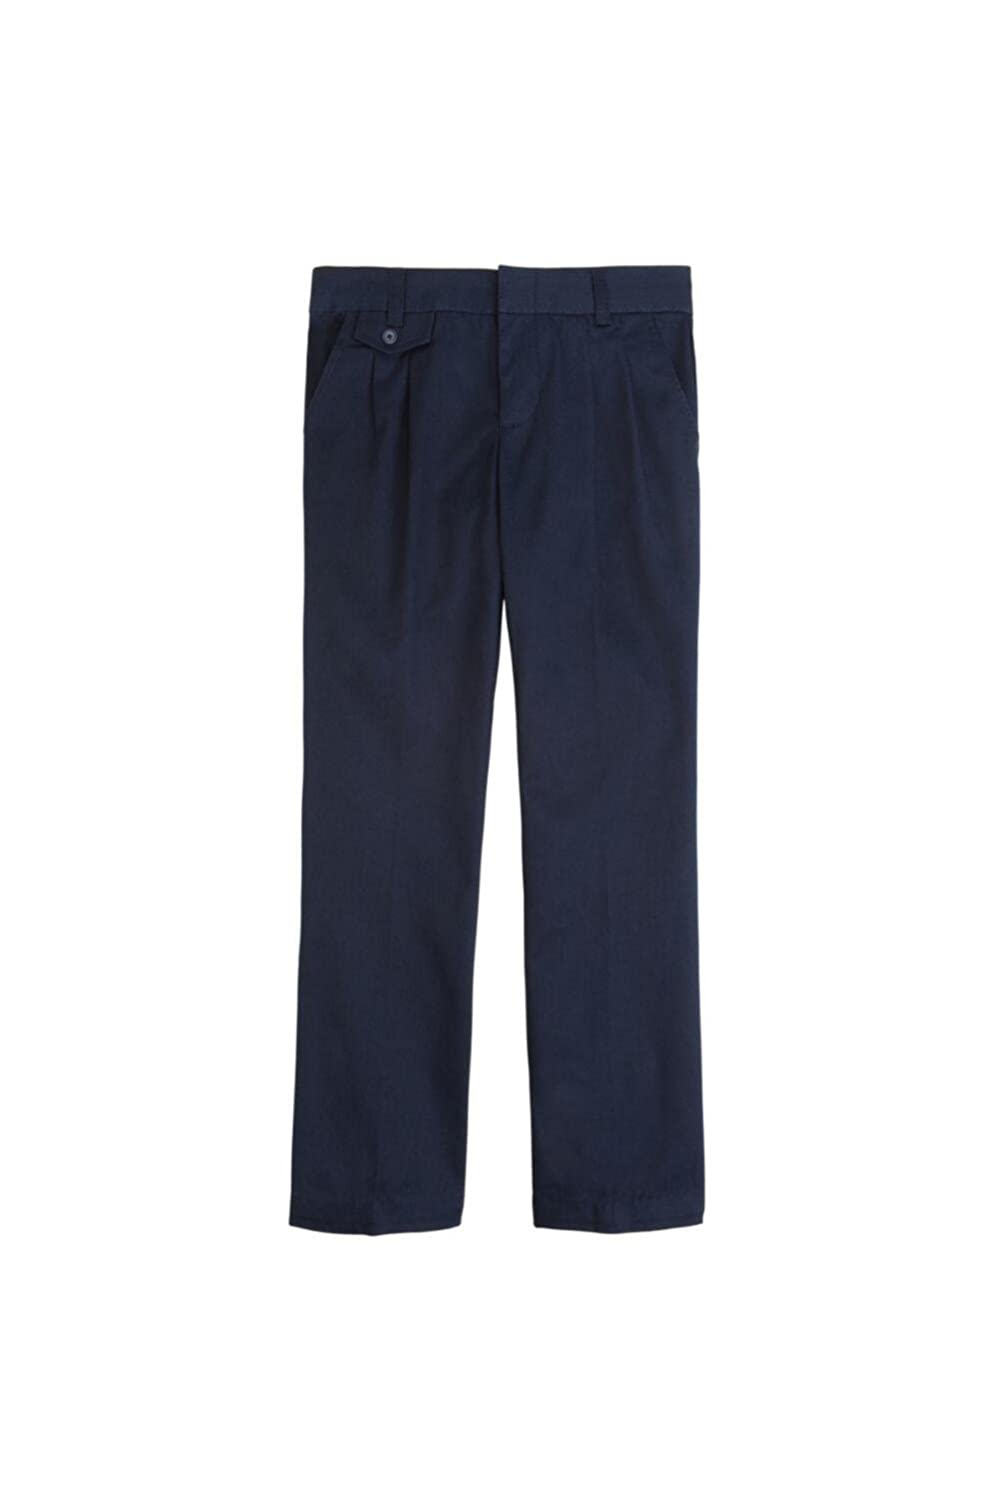 French Toast Adjustable Waist Pleated Pant Girls French Toast School Uniforms 1522U NAVY 12.5